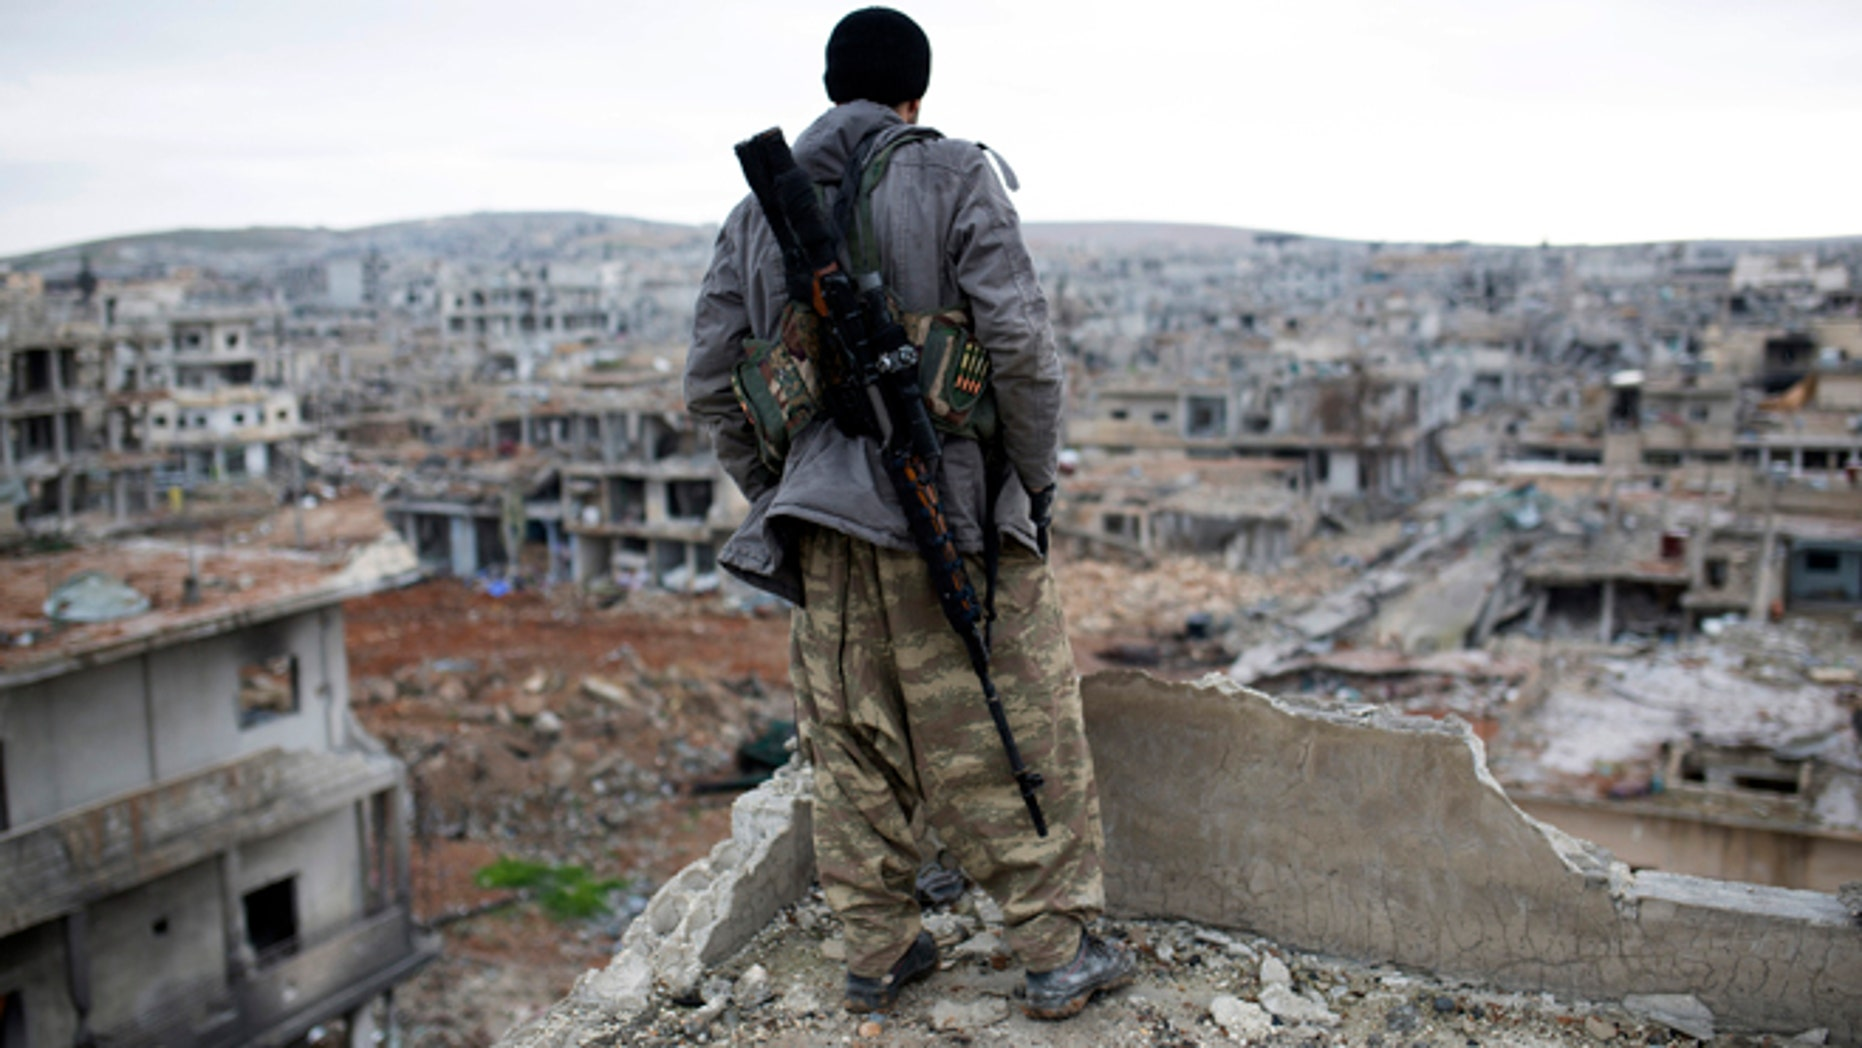 Jan. 30, 2015: In this file photo, a Syrian Kurdish sniper looks at the rubble in the Syrian city of Ain al-Arab, also known as Kobani. Fresh off a major victory in Kobani, Kurdish fighters in Syria have ambitions to become the chief force fighting Islamic State group extremists in the country - building on their victory in Kobani to ally with moderate rebels and push the jihadis ever further.